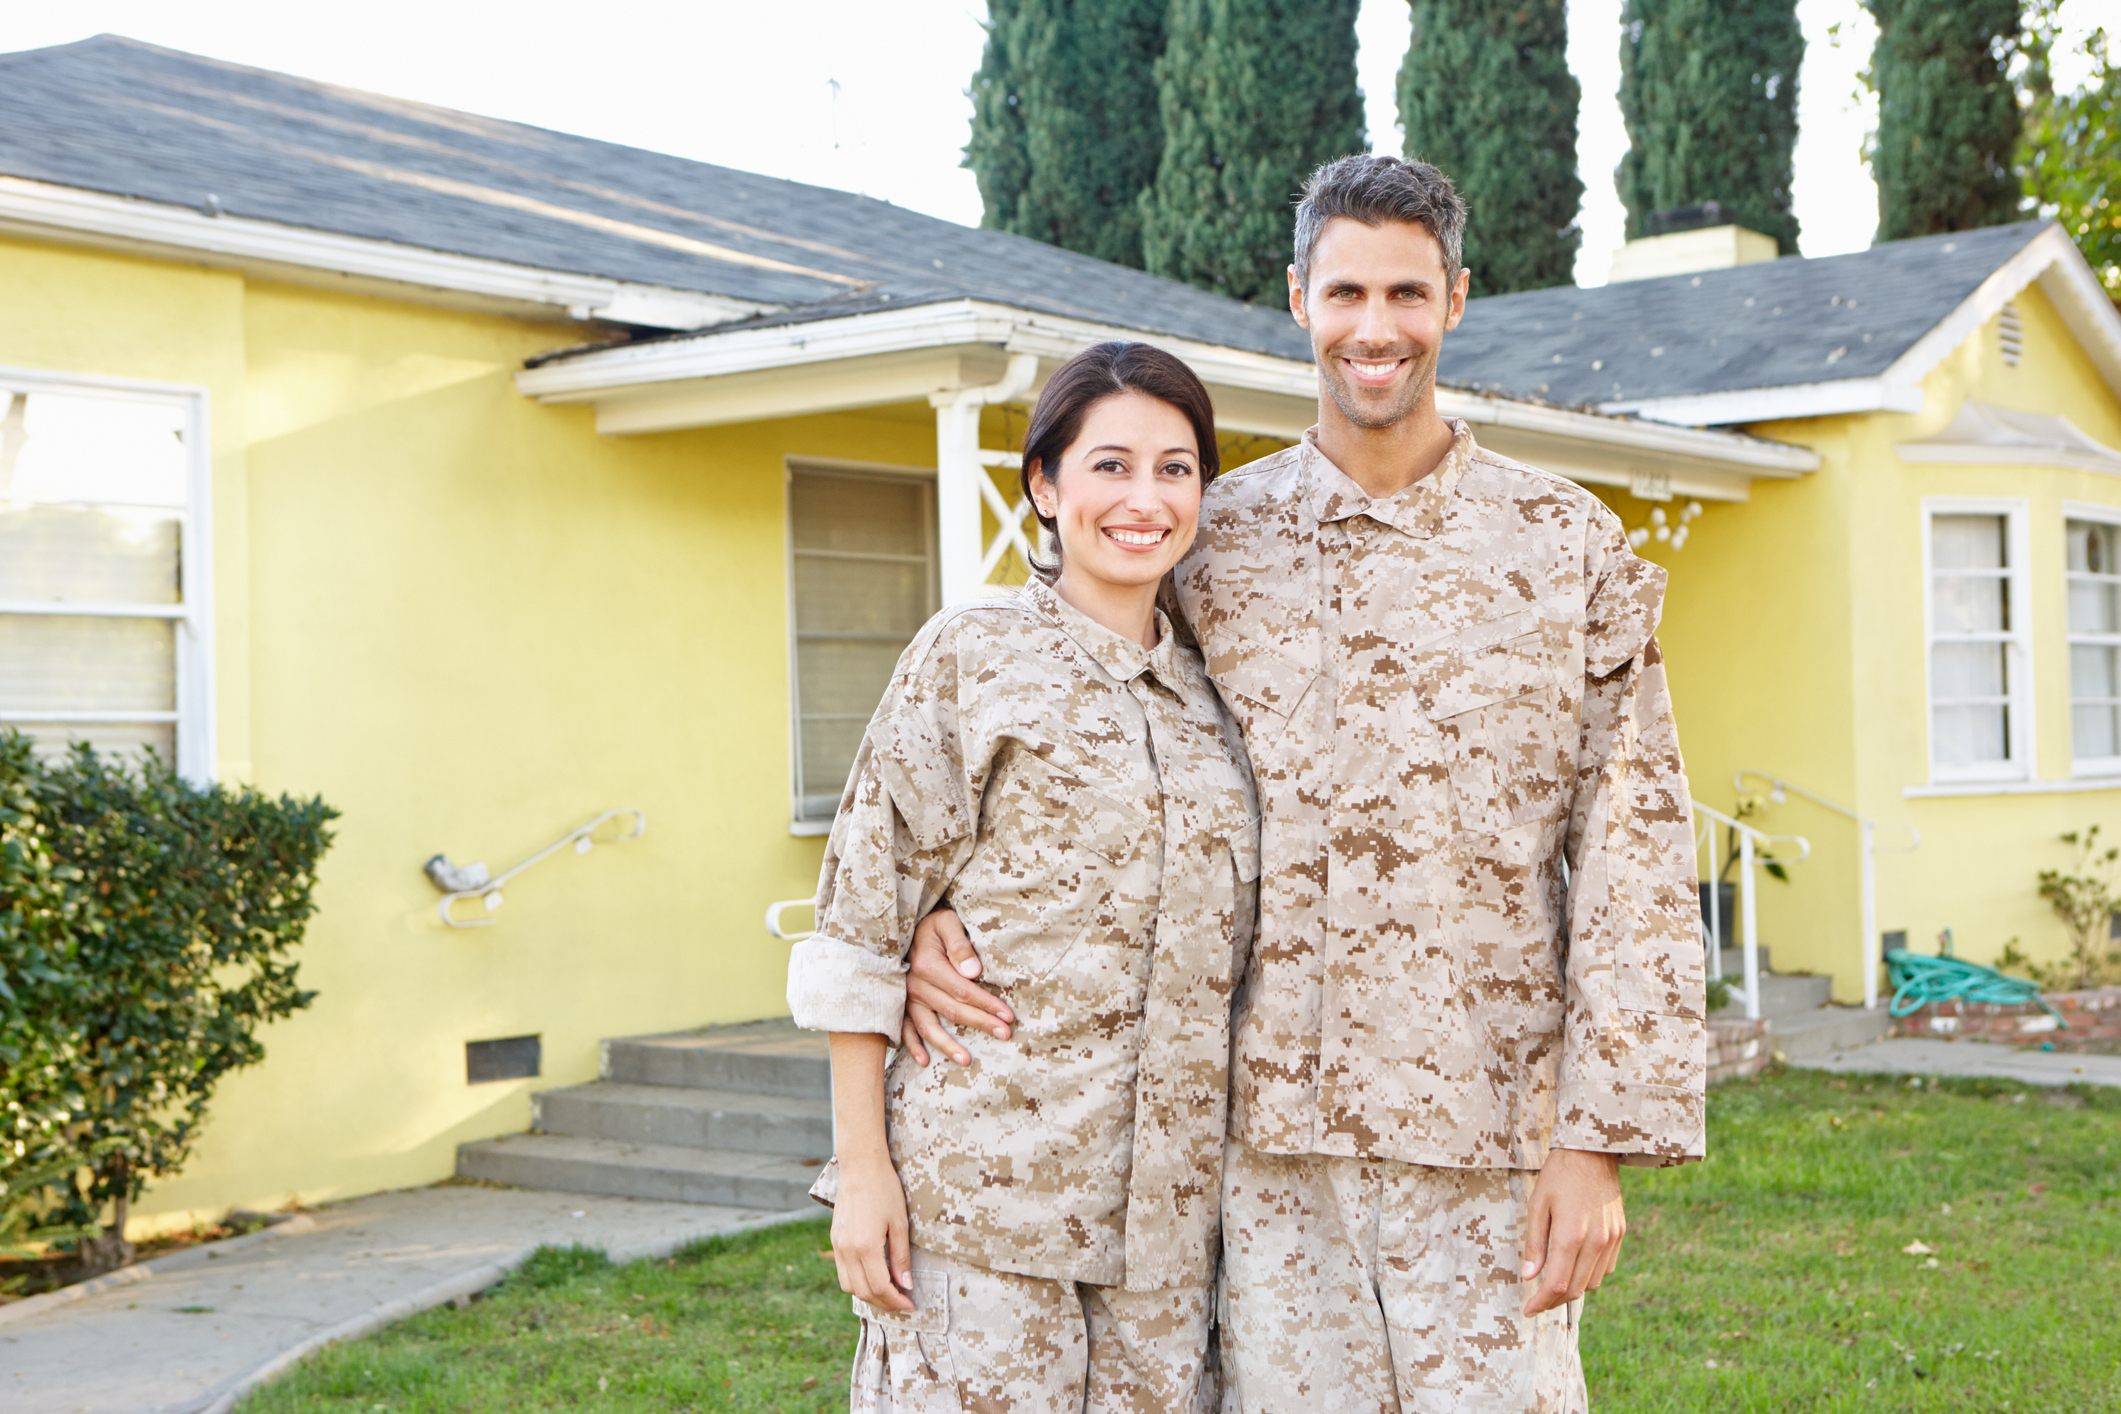 Military Couple Gets Roofing Benefits